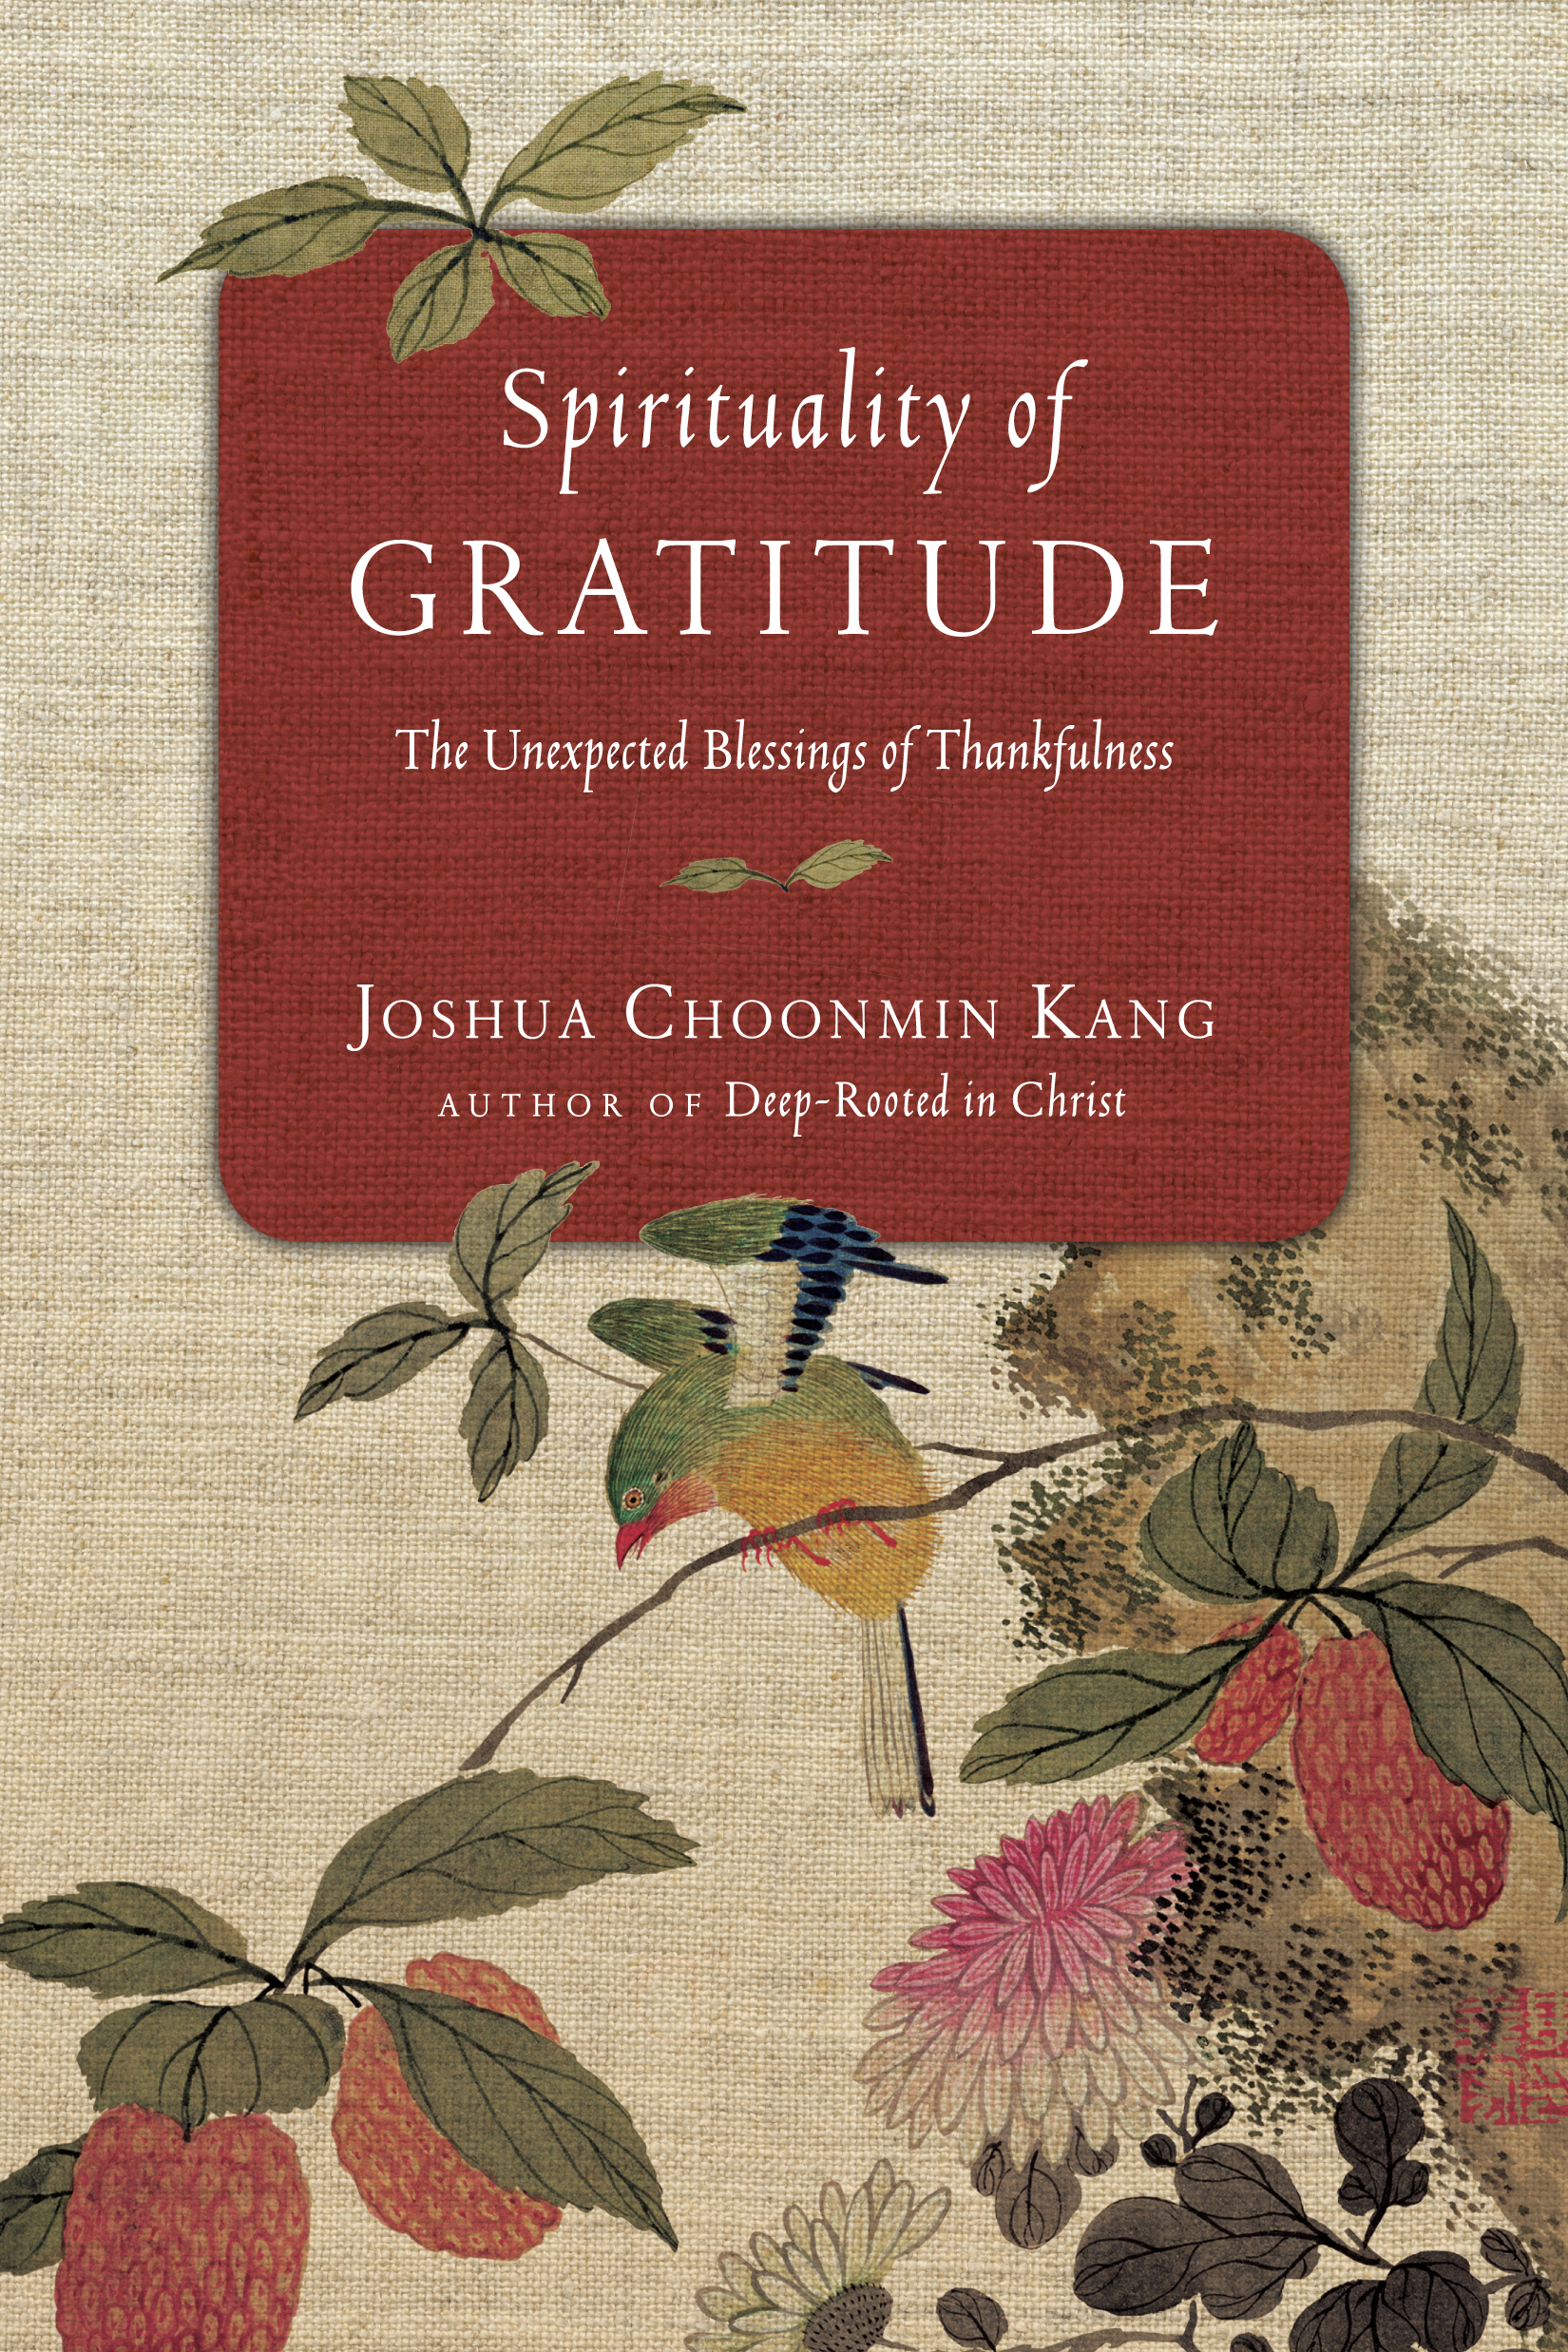 Spirituality of Gratitude The Unexpected Blessings of Thankfulness